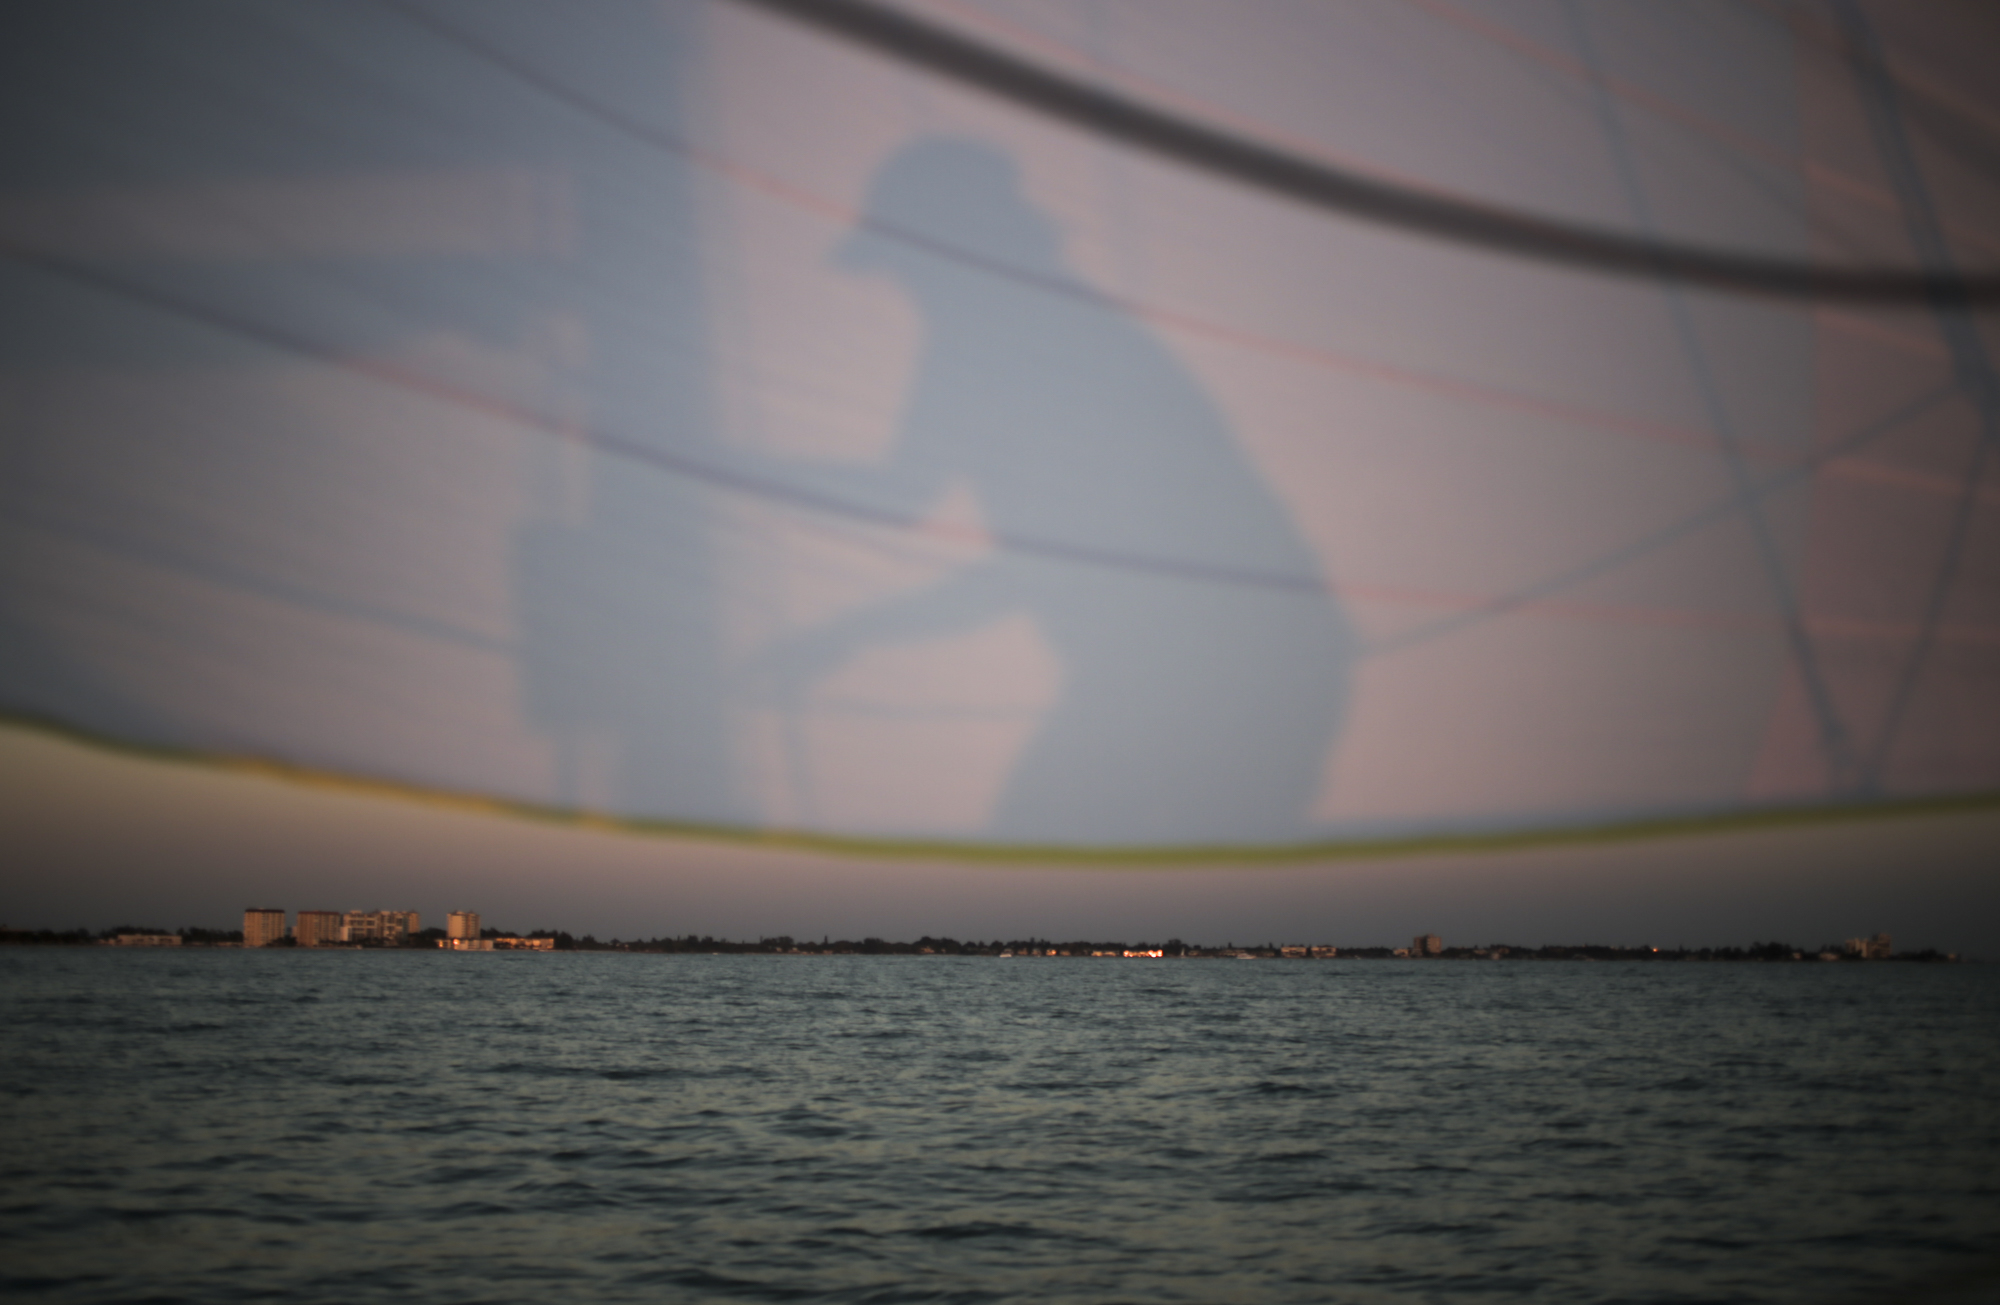 Dawn Narramore of Tampa adjusts the mast of the Mad Cow 2 as the sun sets over Long Boat Key, north of Sarasota, Friday, May 26, 2017. Narramore is originally from Wichita, Kansas and did not sail before she moved to Tampa about 20 years ago. She is now part of a seven person crew that sailed a 24-hour, 100-mile competition from Egmont Key to Fort Meyers.